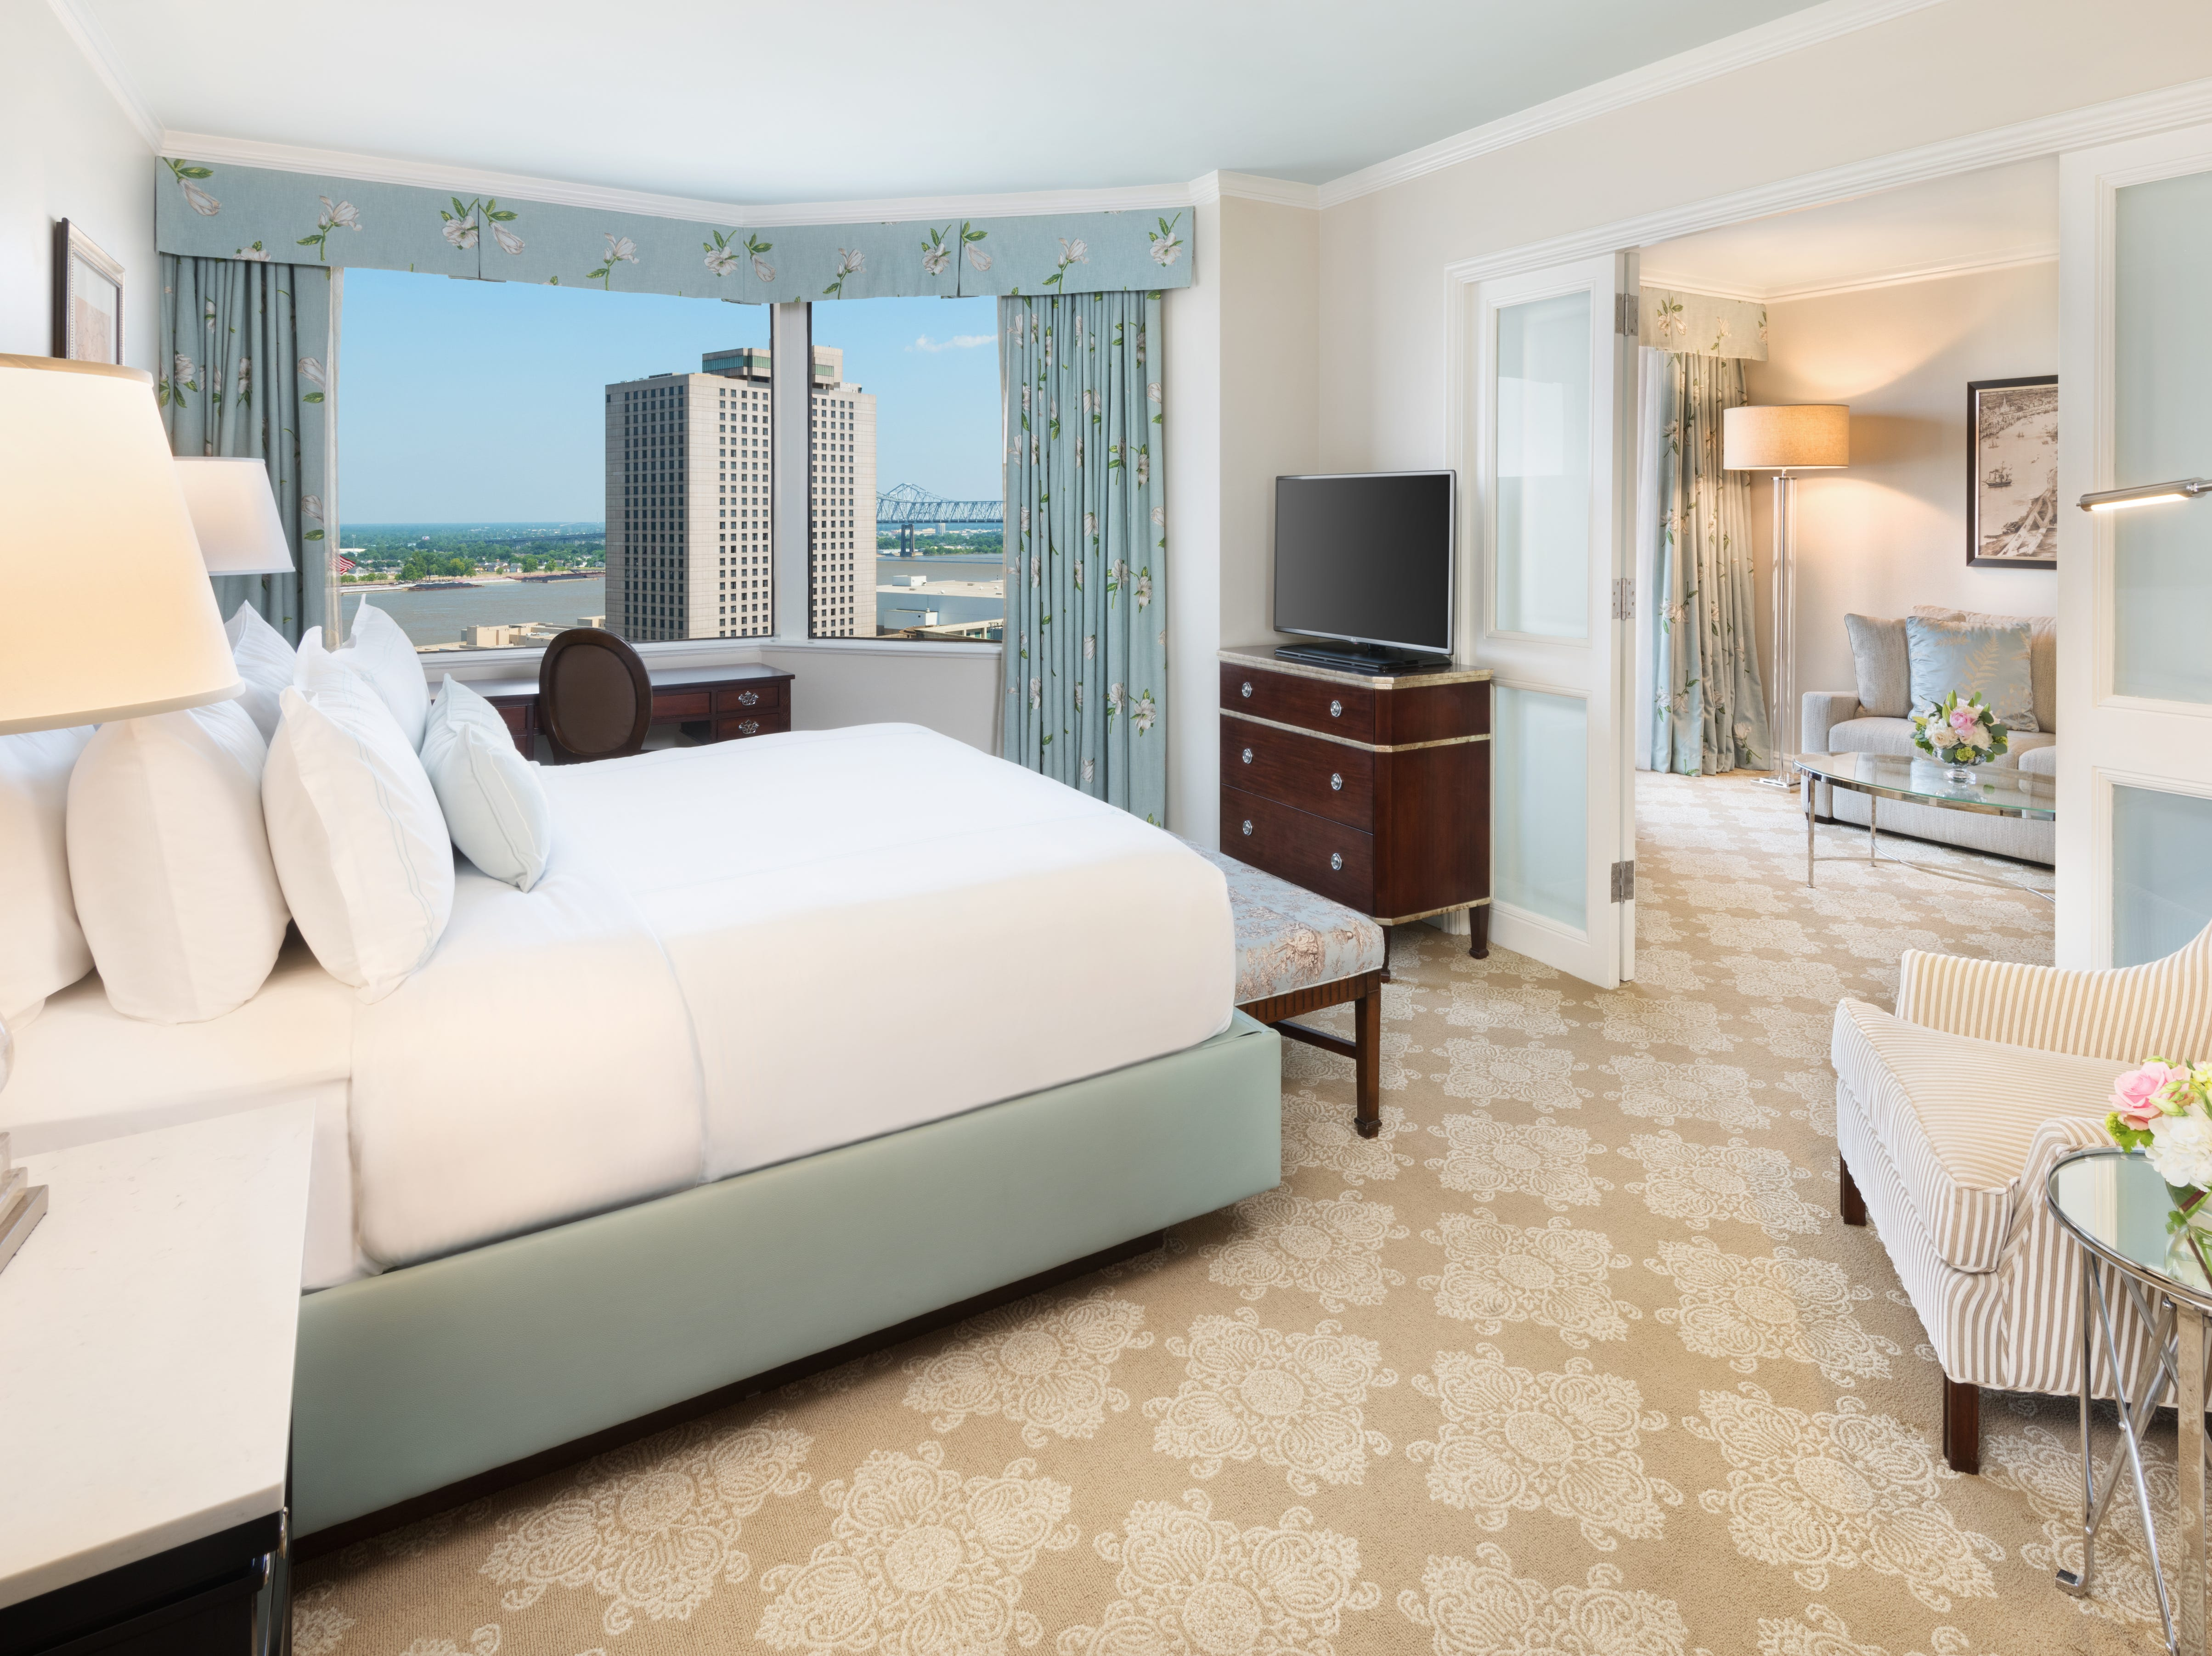 This is one of the renovated suites at the Windsor Court Hotel in New Orleans.